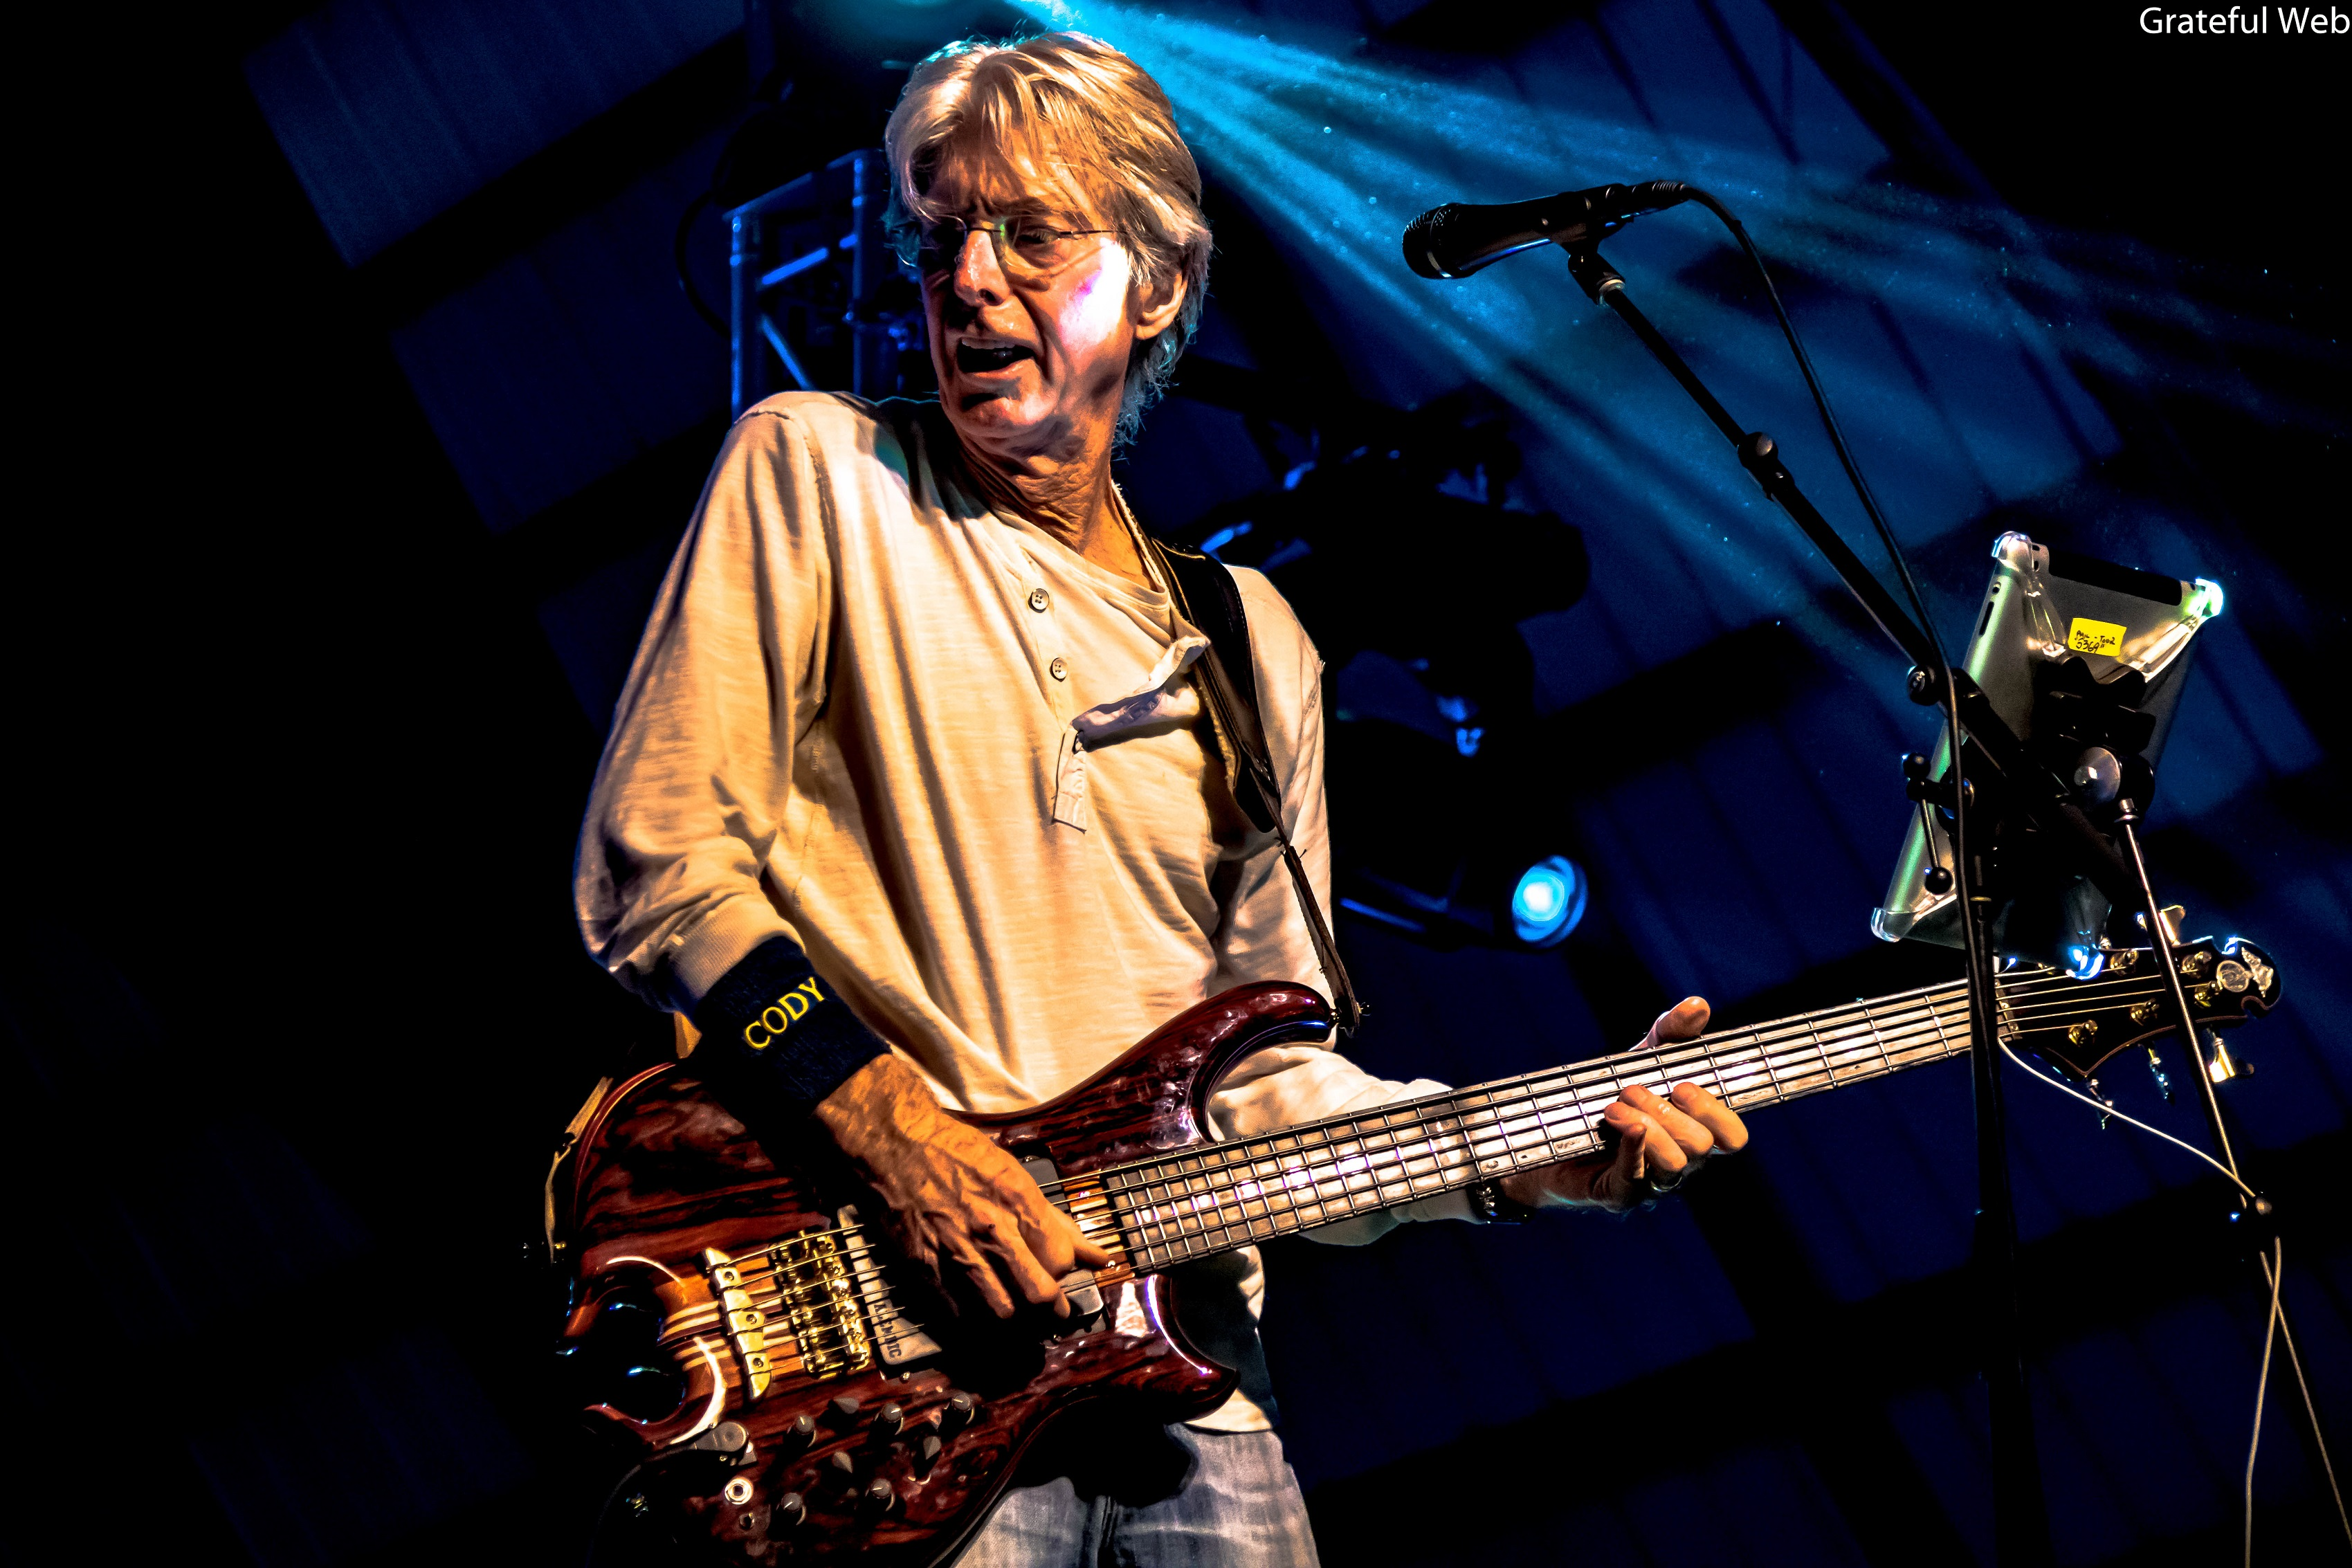 Phil Lesh & The Terrapin Family Band will play Friday, July 26th